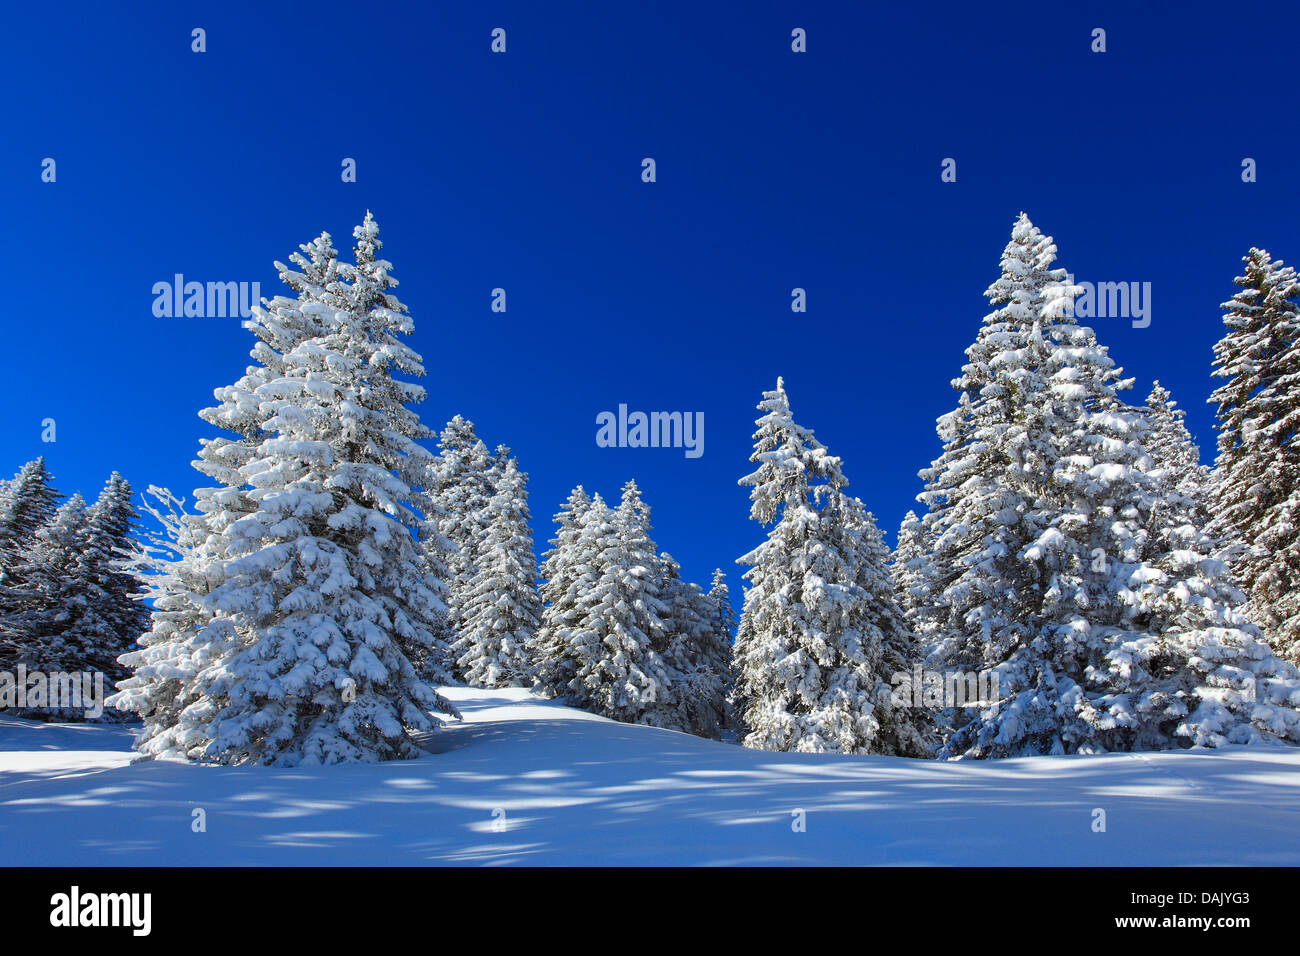 Norway spruce (Picea abies), snow-covered spruces in the Suisse Alps, Switzerland - Stock Image